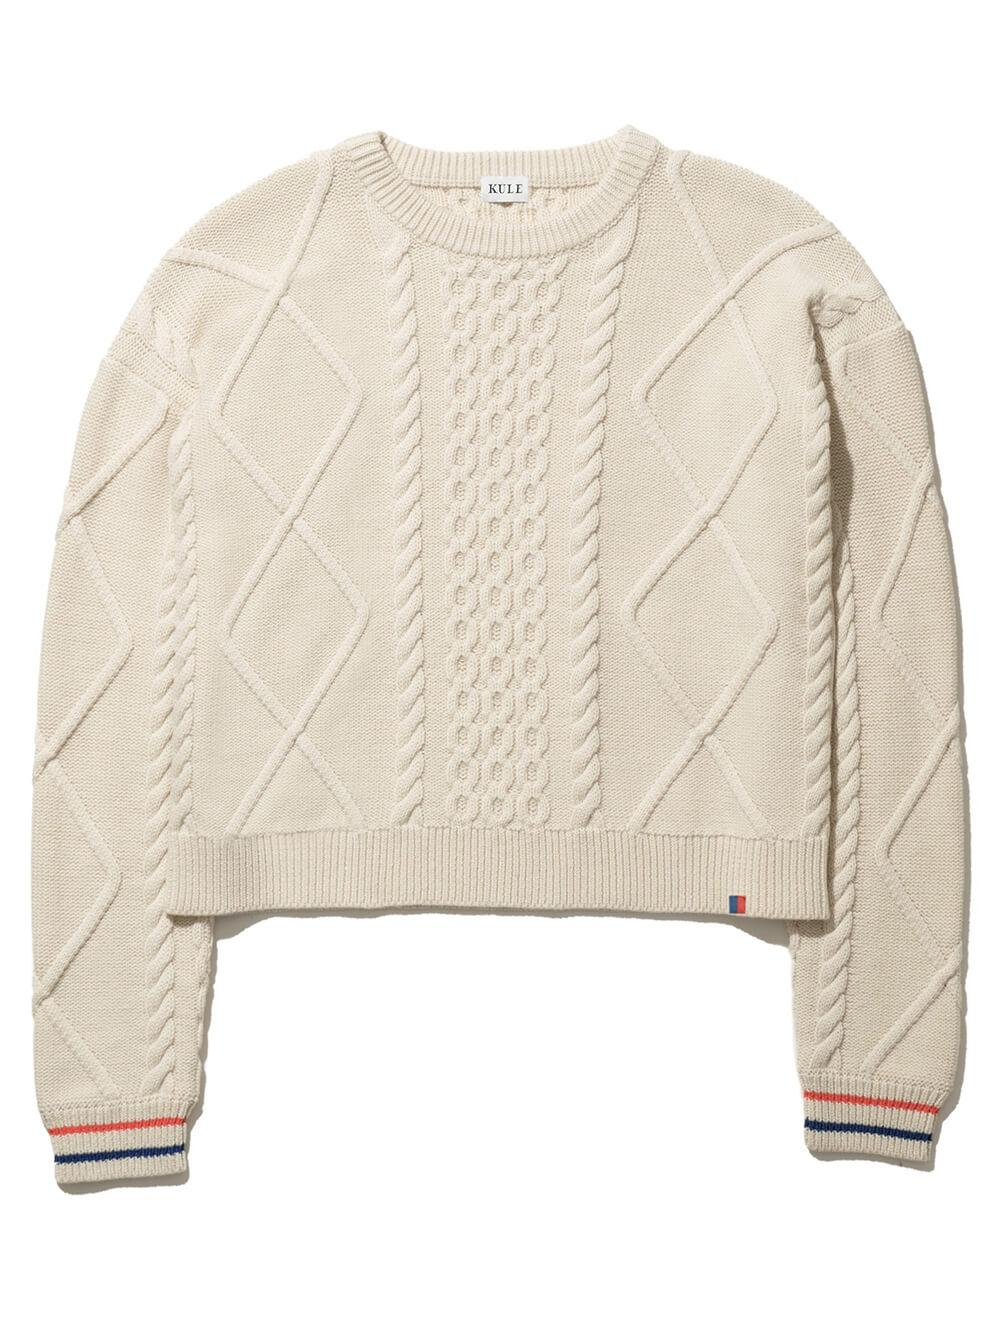 The Verne Cable Knit Sweater Item # SW191F3